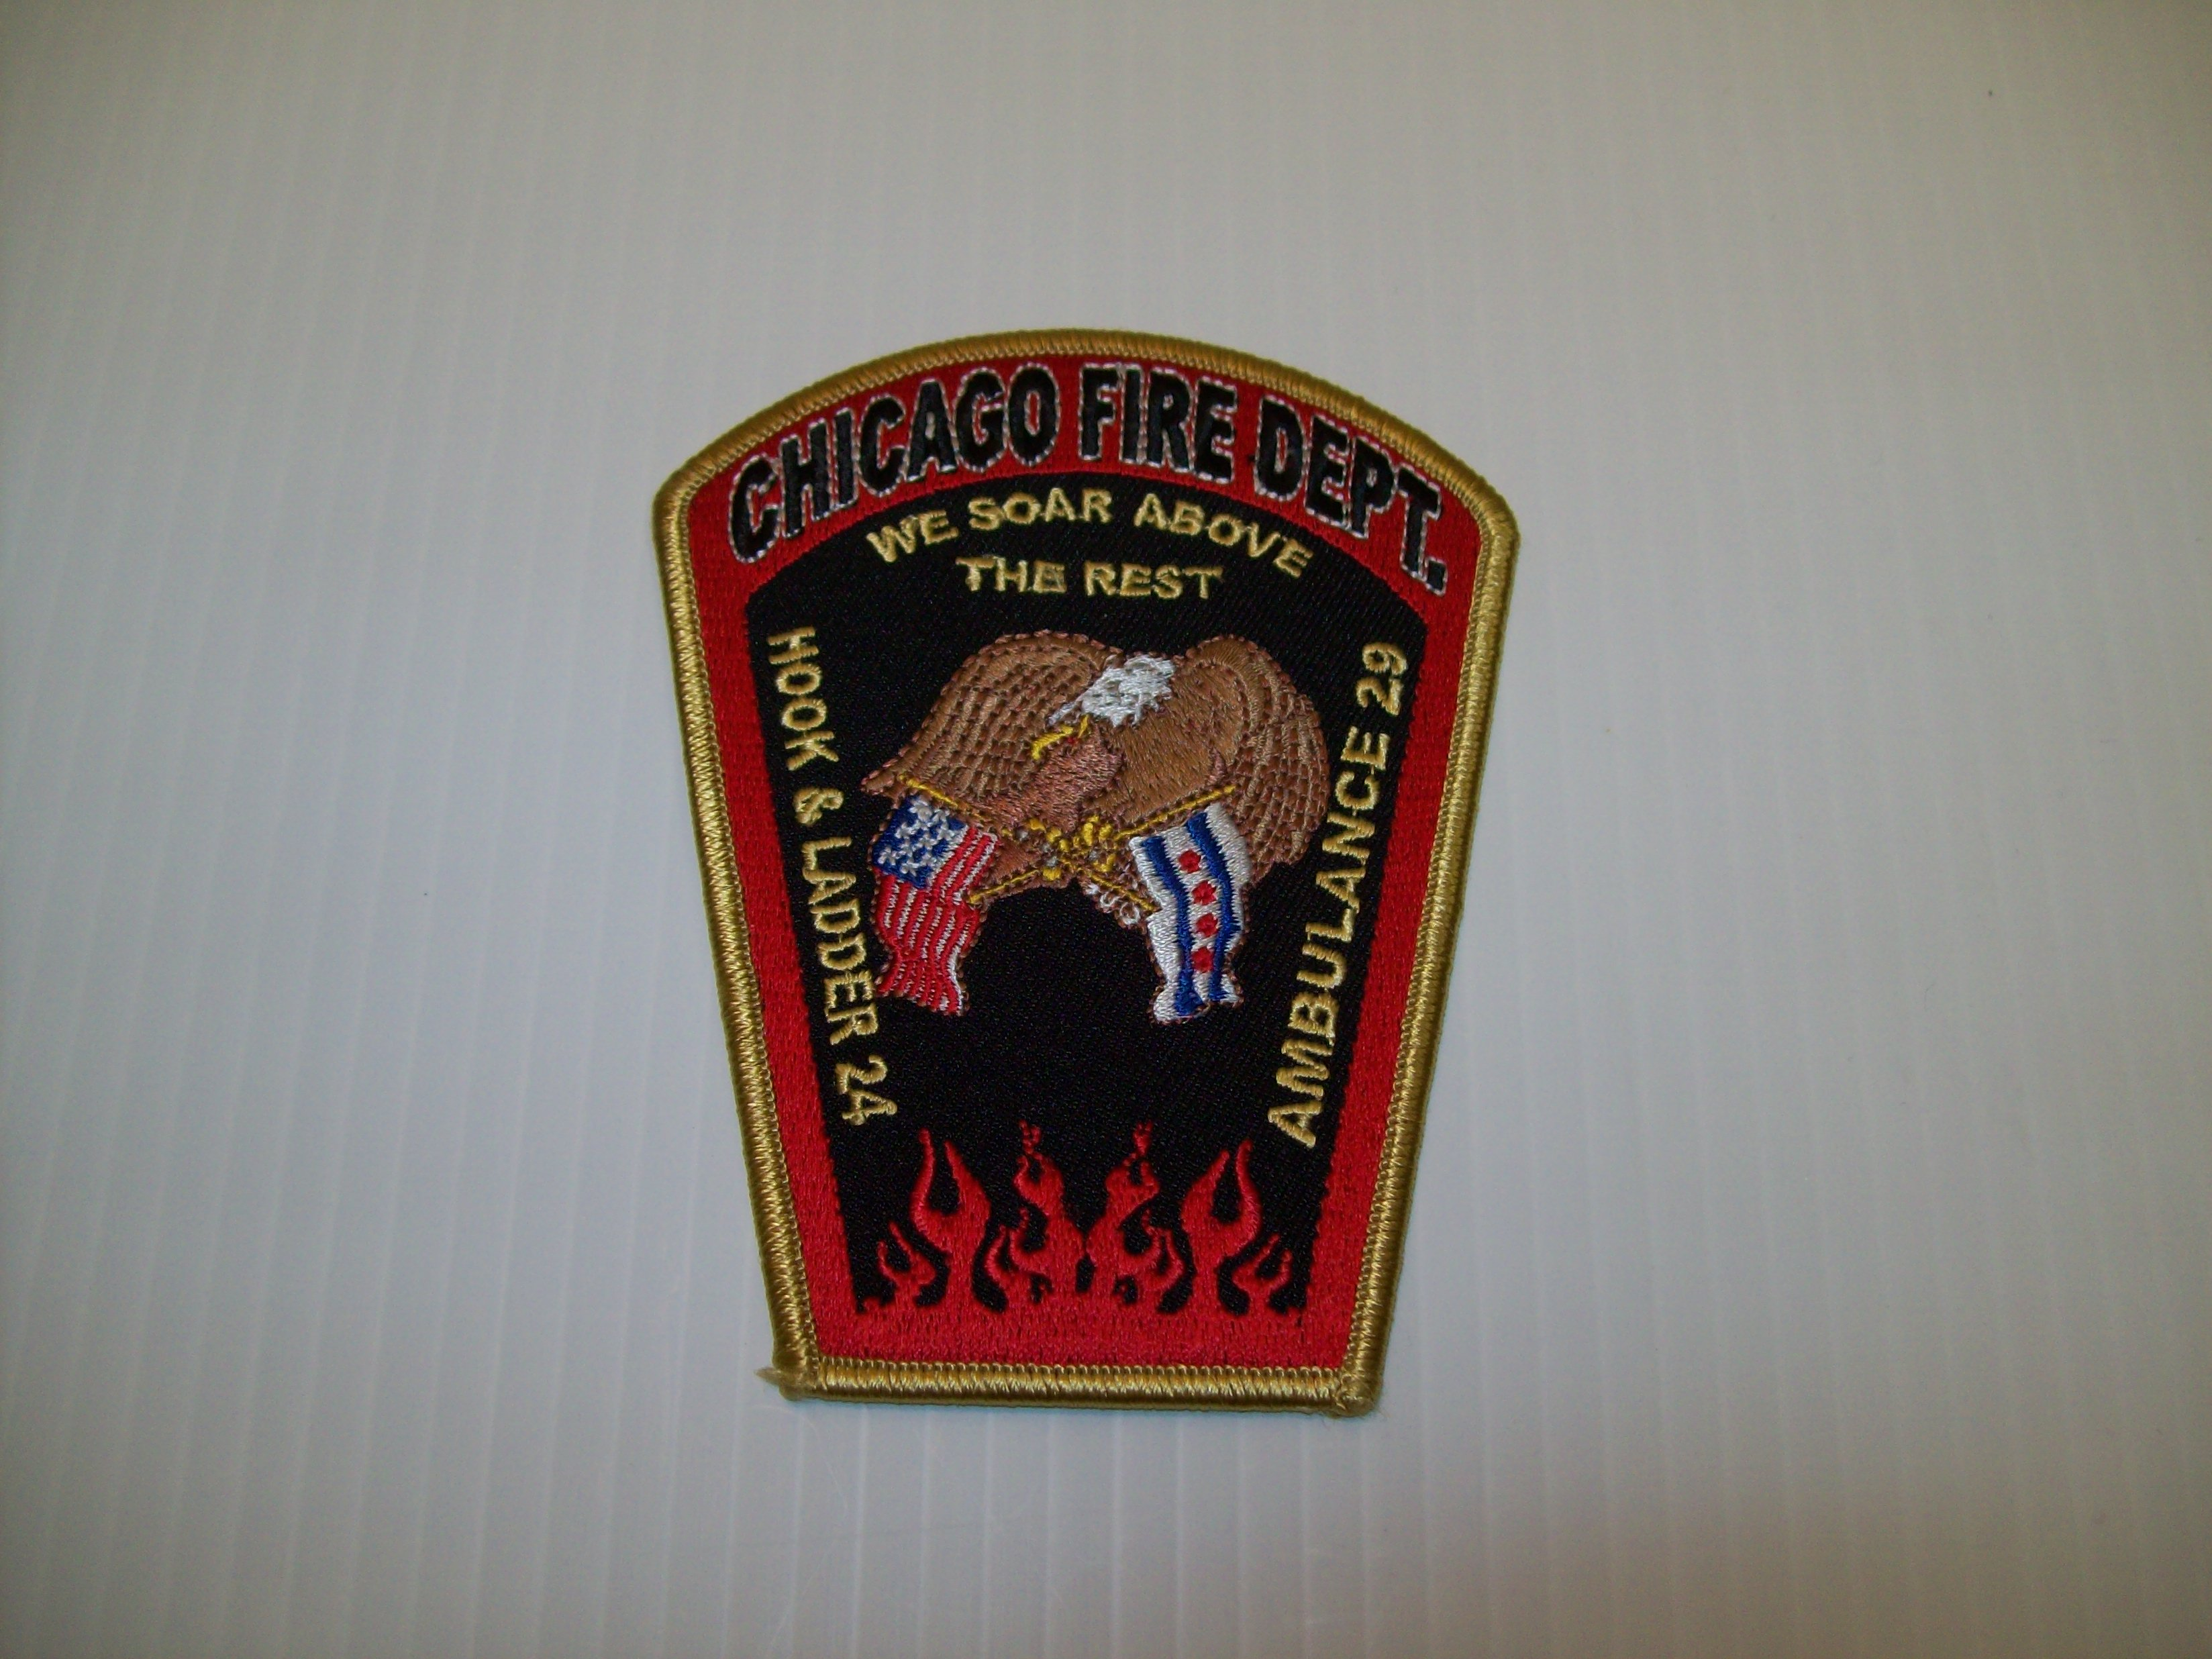 Chicago fire department hook and ladder 24 patch shraders goods chicago fire department hook and ladder 24 patch biocorpaavc Images